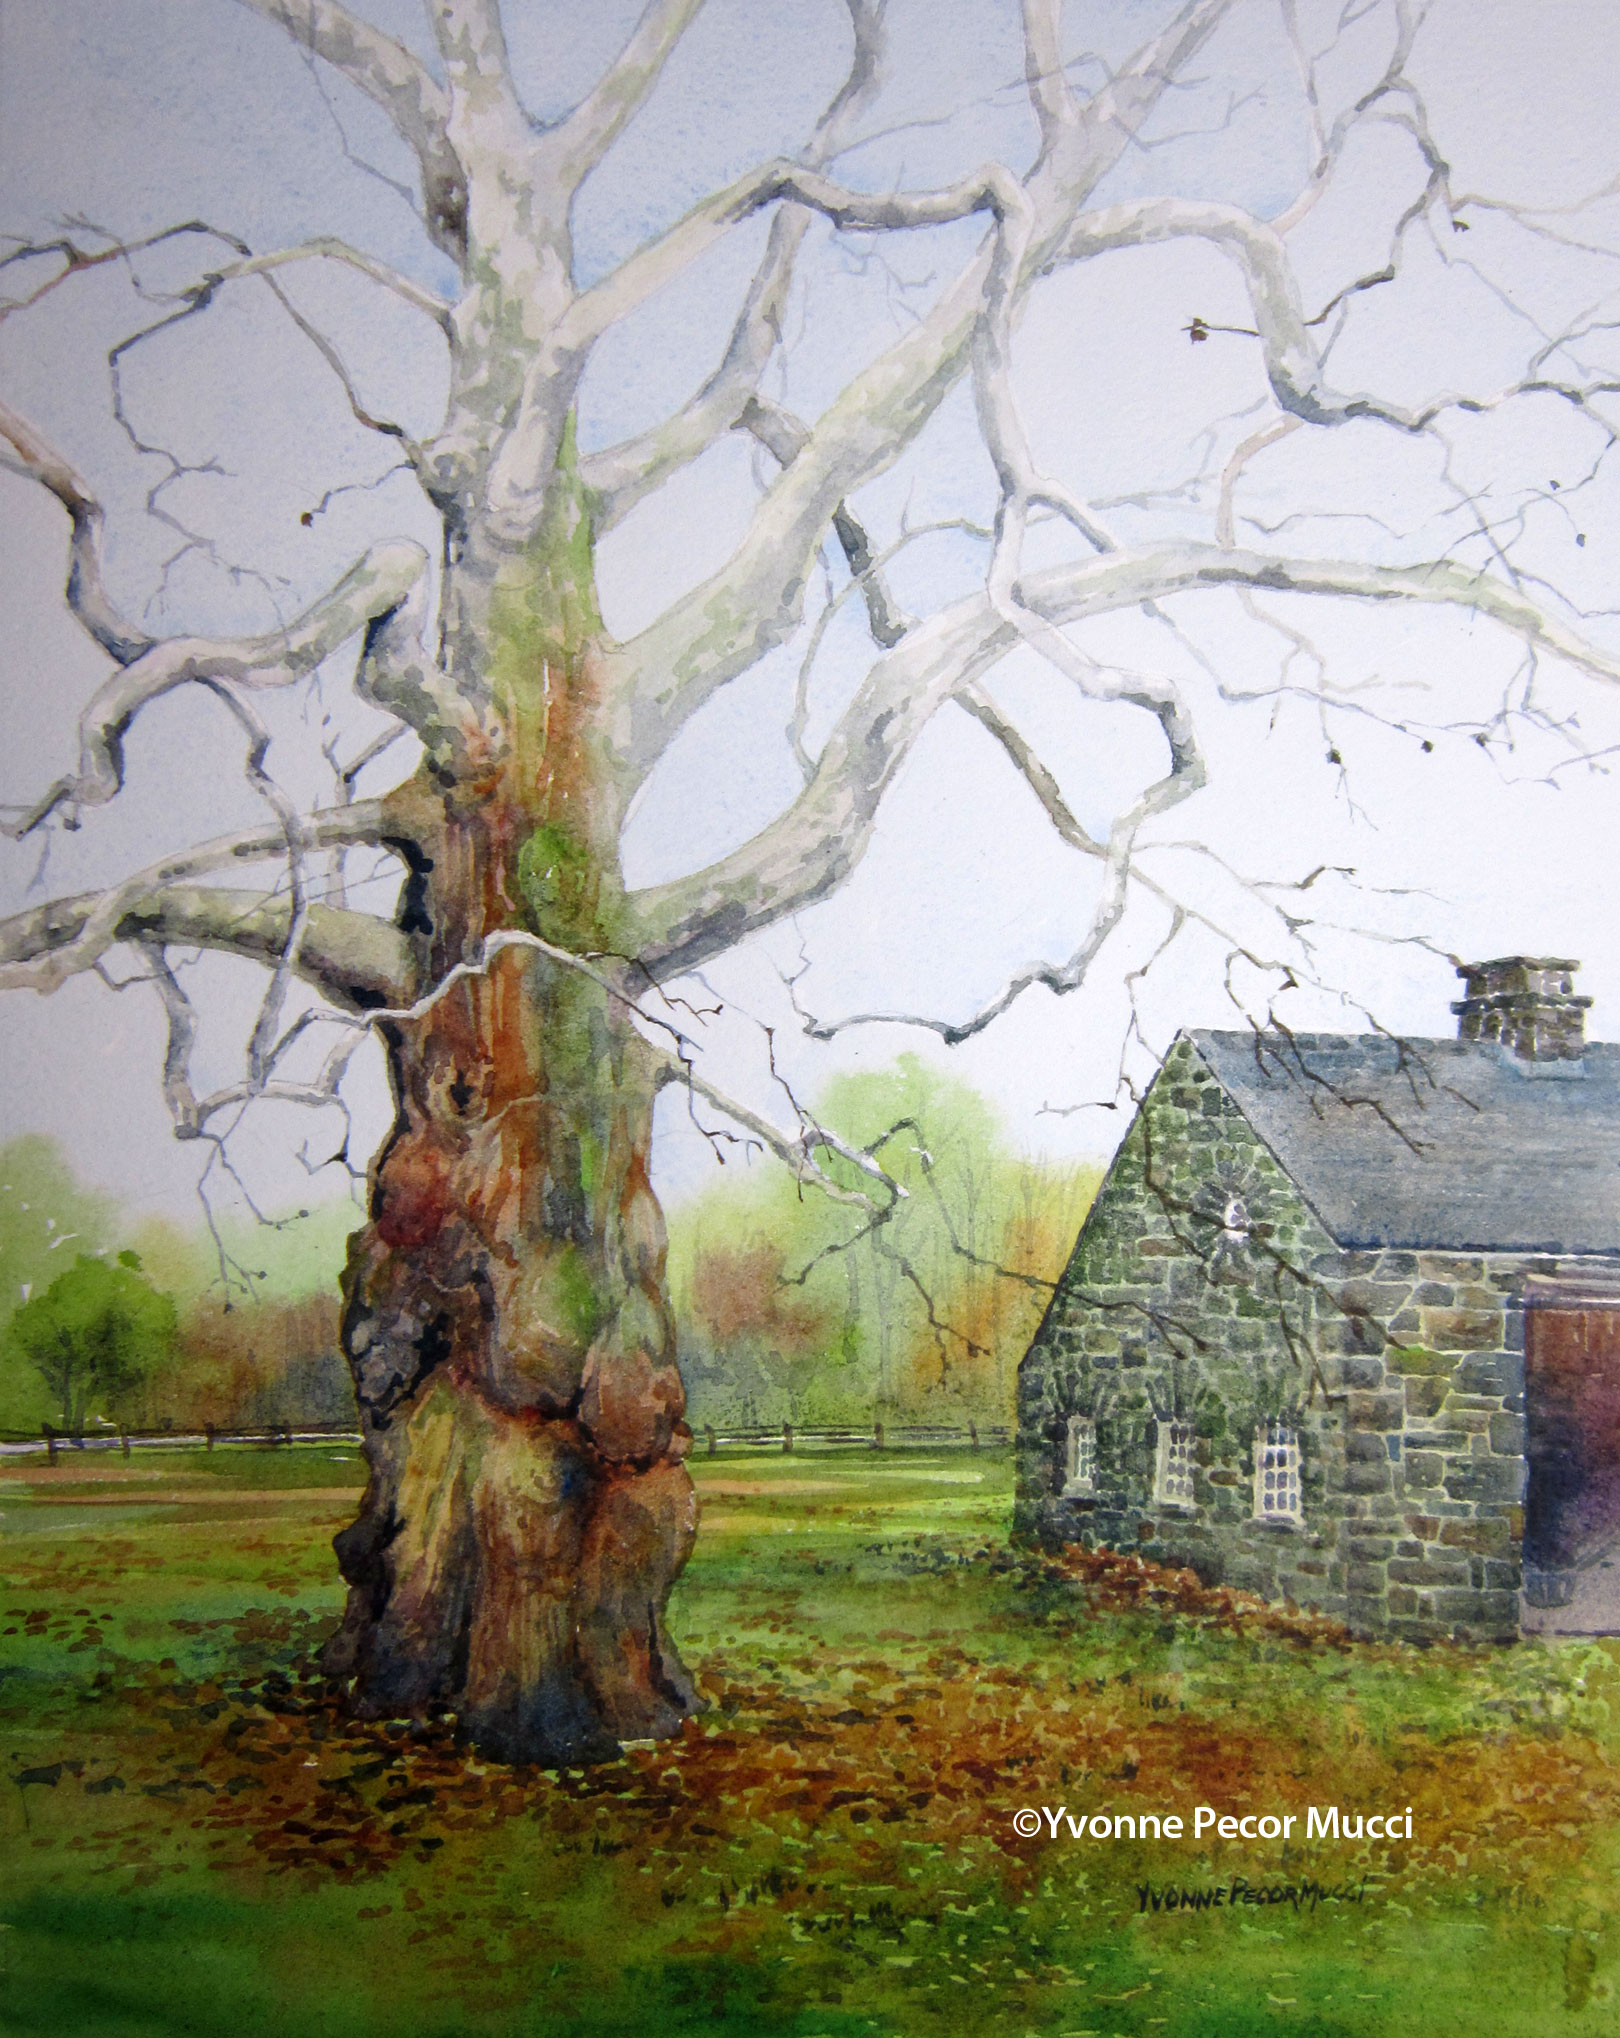 Where The Sycamore Grows watercolor by Yvonne Pecor Mucci (Framed 16 x 20, Available)